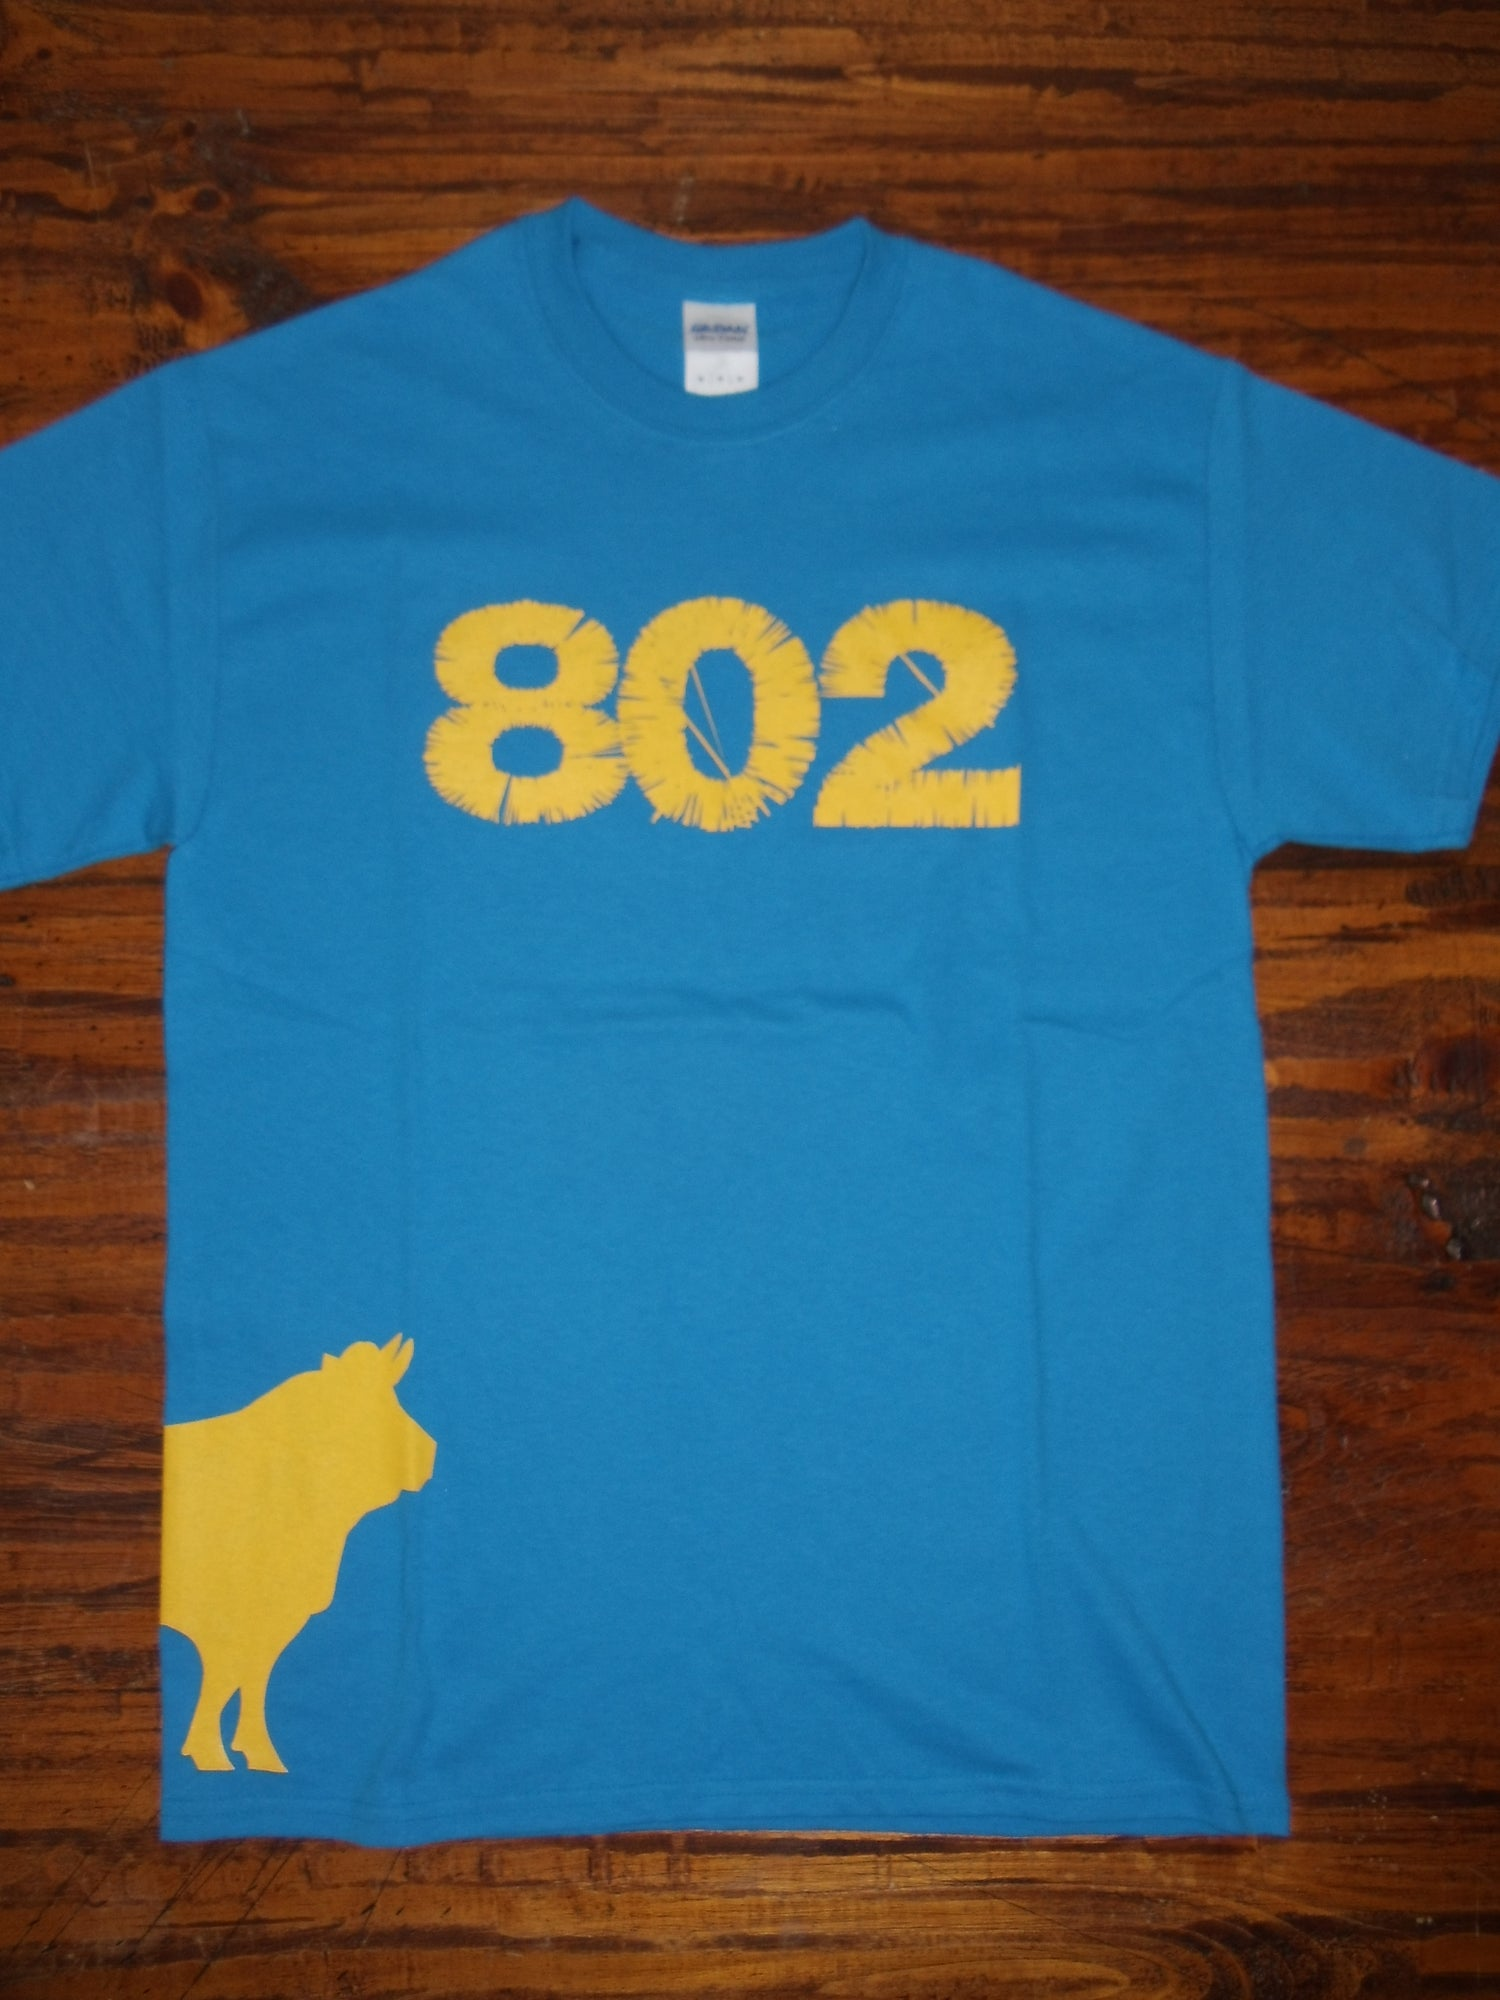 749da3ea Image of 802 Cow Shirt - Vermont Shirt - Vermont Cow - Vermont Clothing -  802